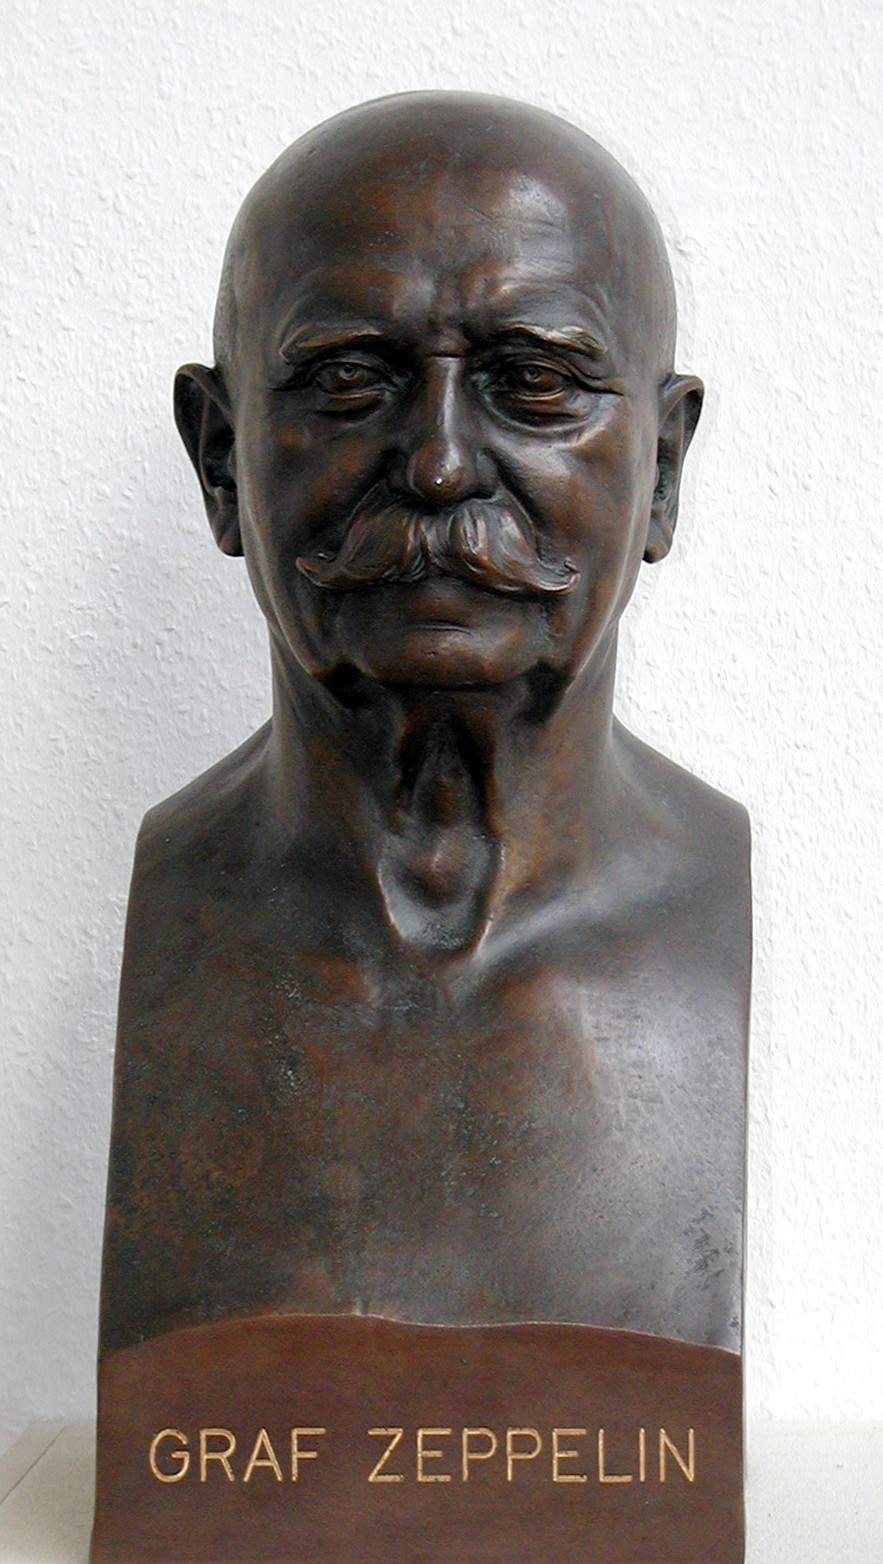 A bust of Count Zeppelin in the AERONAUTICUM in Nordholz, Germany.